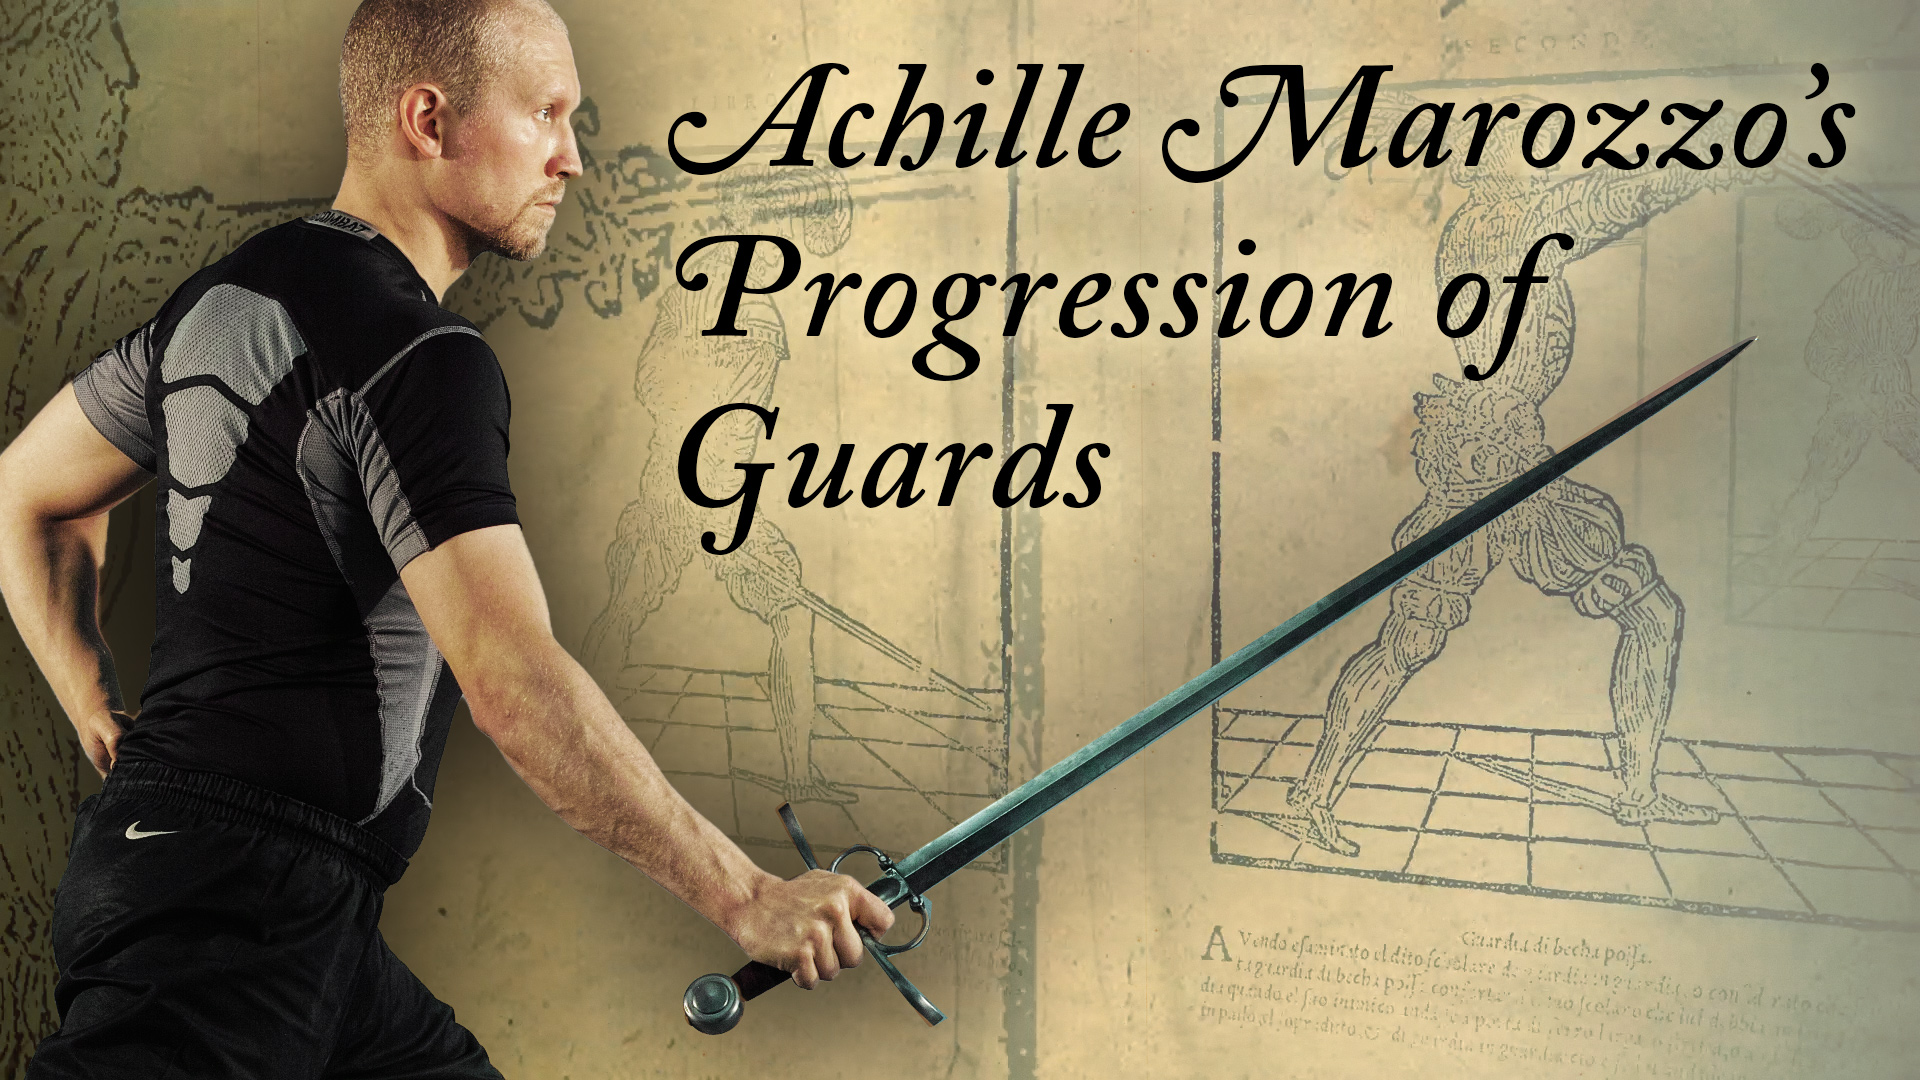 New instructional video on Marozzo's guards!